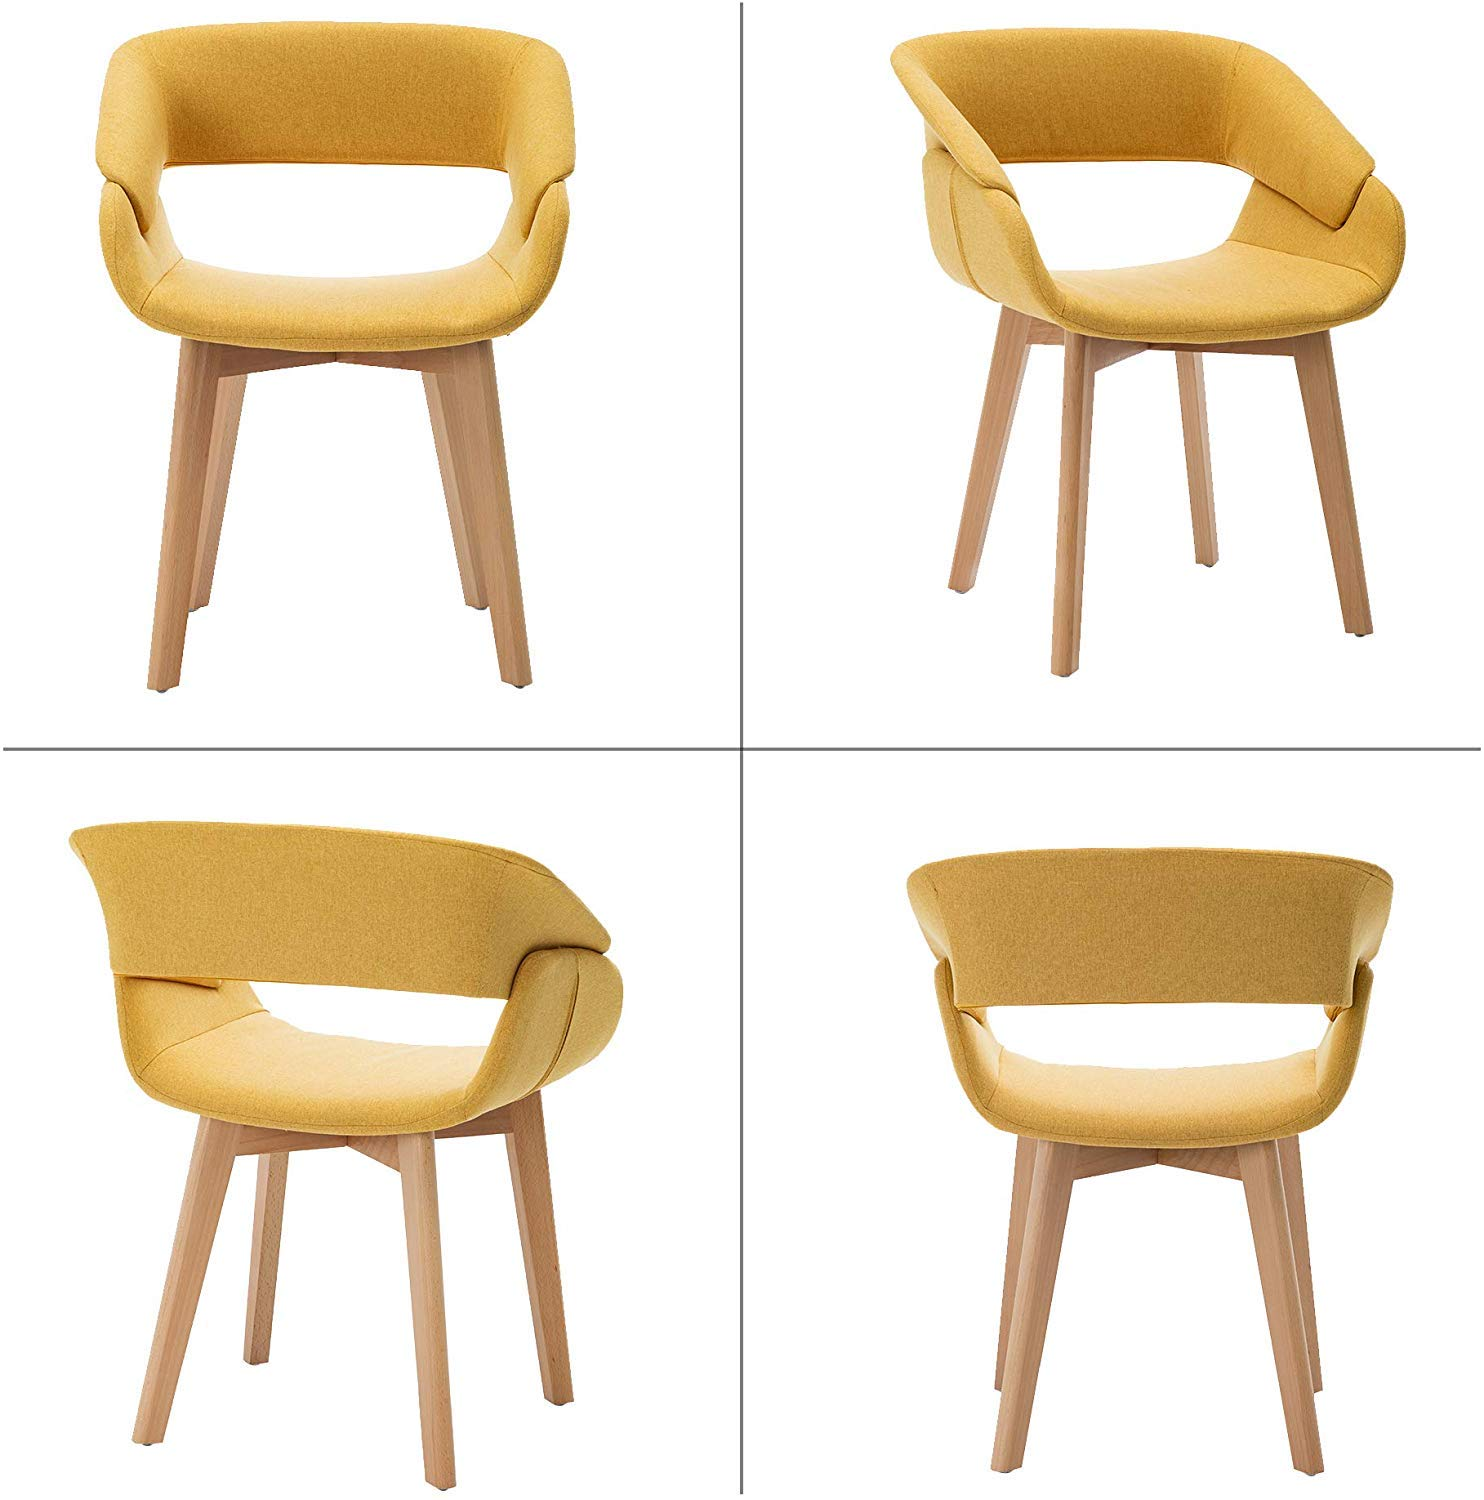 Teraves Dining Chair Set of 9 Office Lounge Living Room Kitchen Chair with  Wooden Legs Dining Room Chairs with Armrests and Backrest (9 pcs, Yellow)